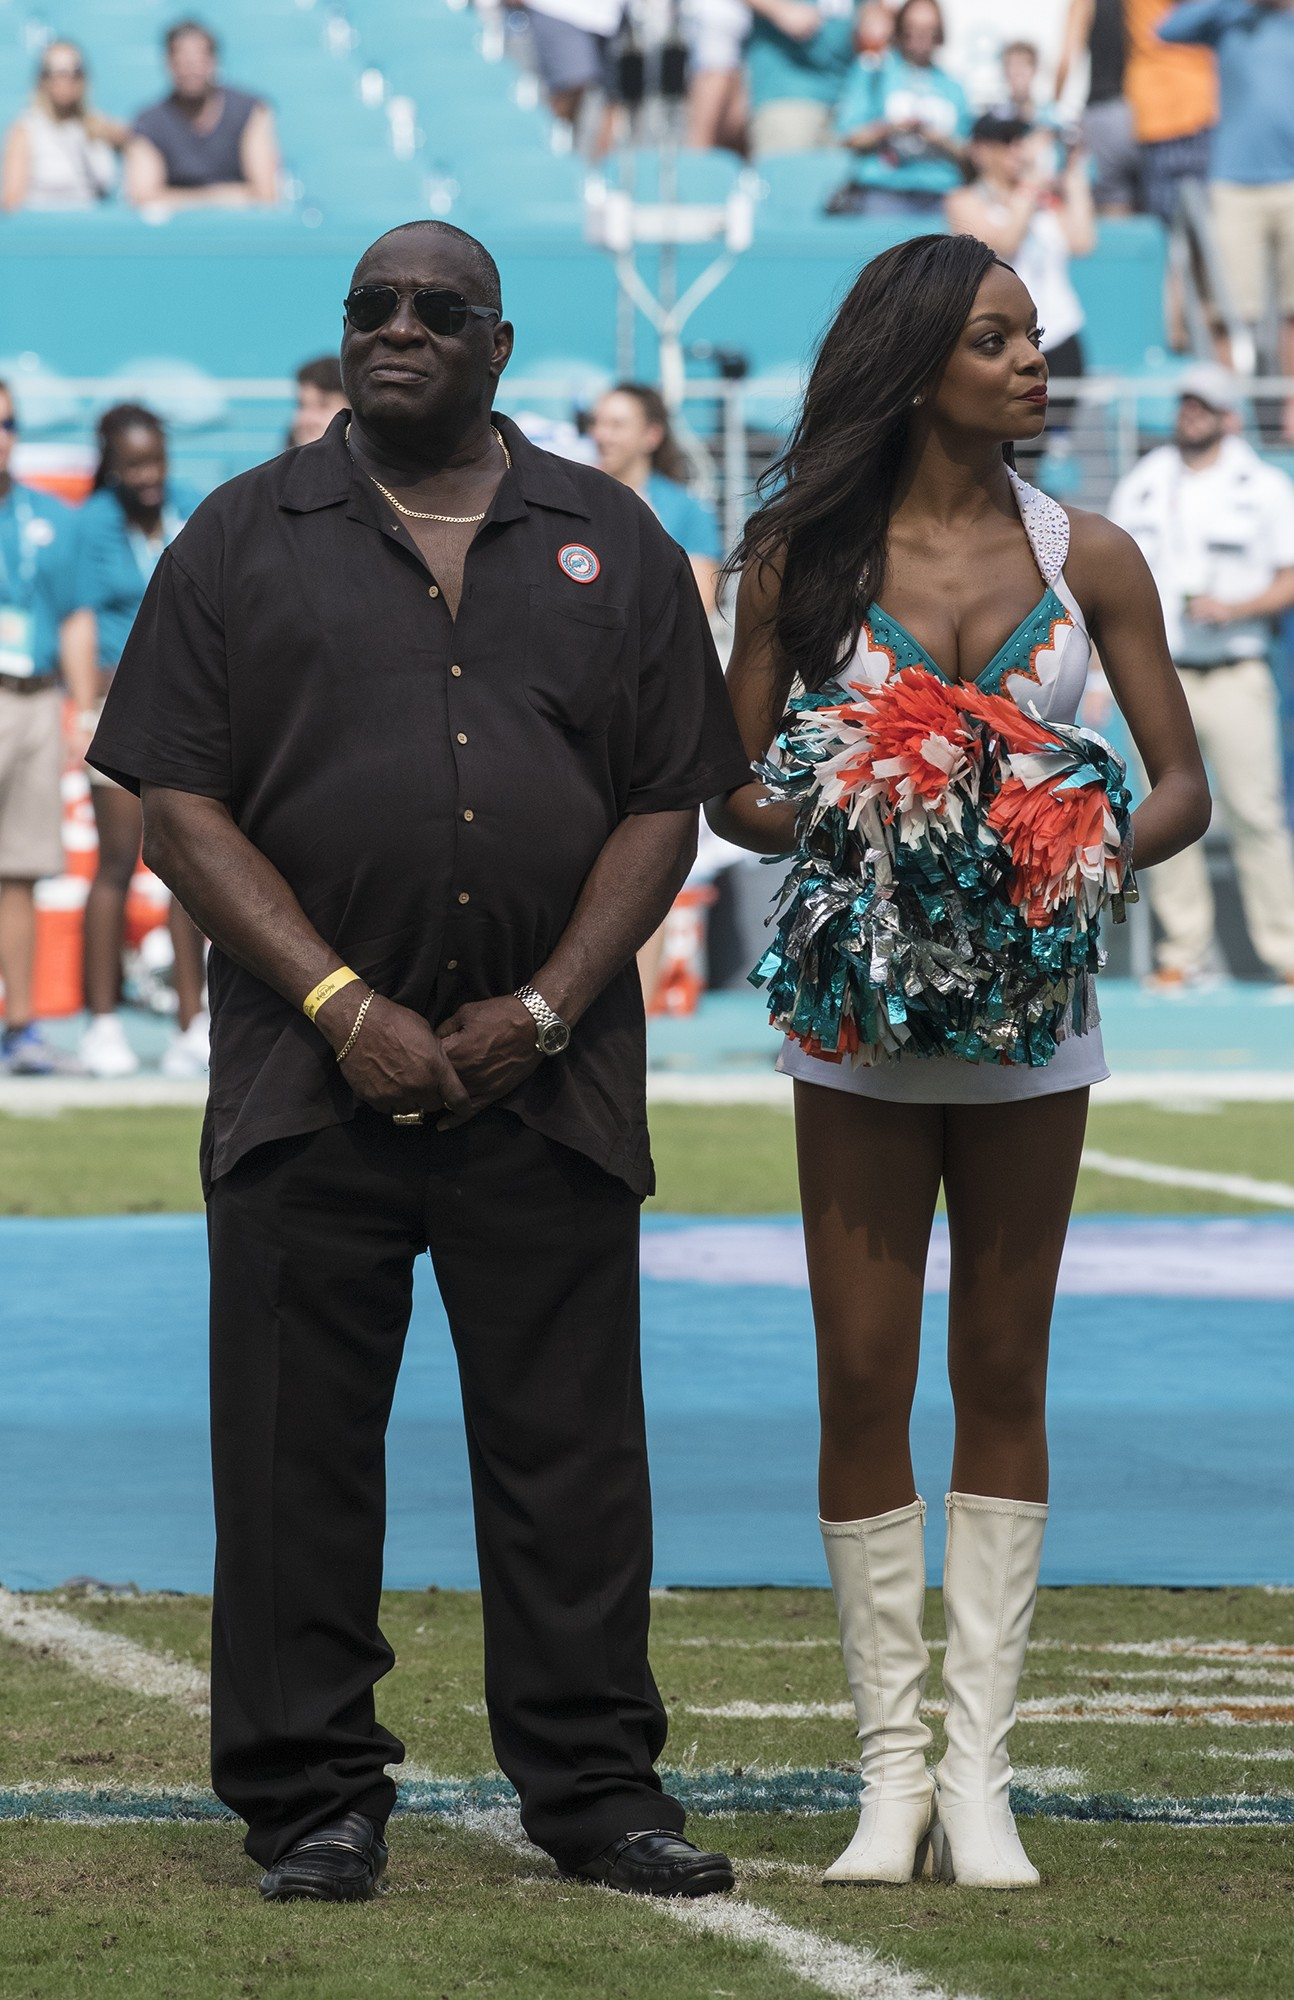 Perfect 72 and Hall of Fame member Larry Little looks at the big screen as he and the Perfect 72 team are honored during half time of the New York Jets and Miami Dolphins game on Sunday, Oct. 22, 2017, in Miami Gardens, Fla. (Donald Edgar/El Latino Digital)